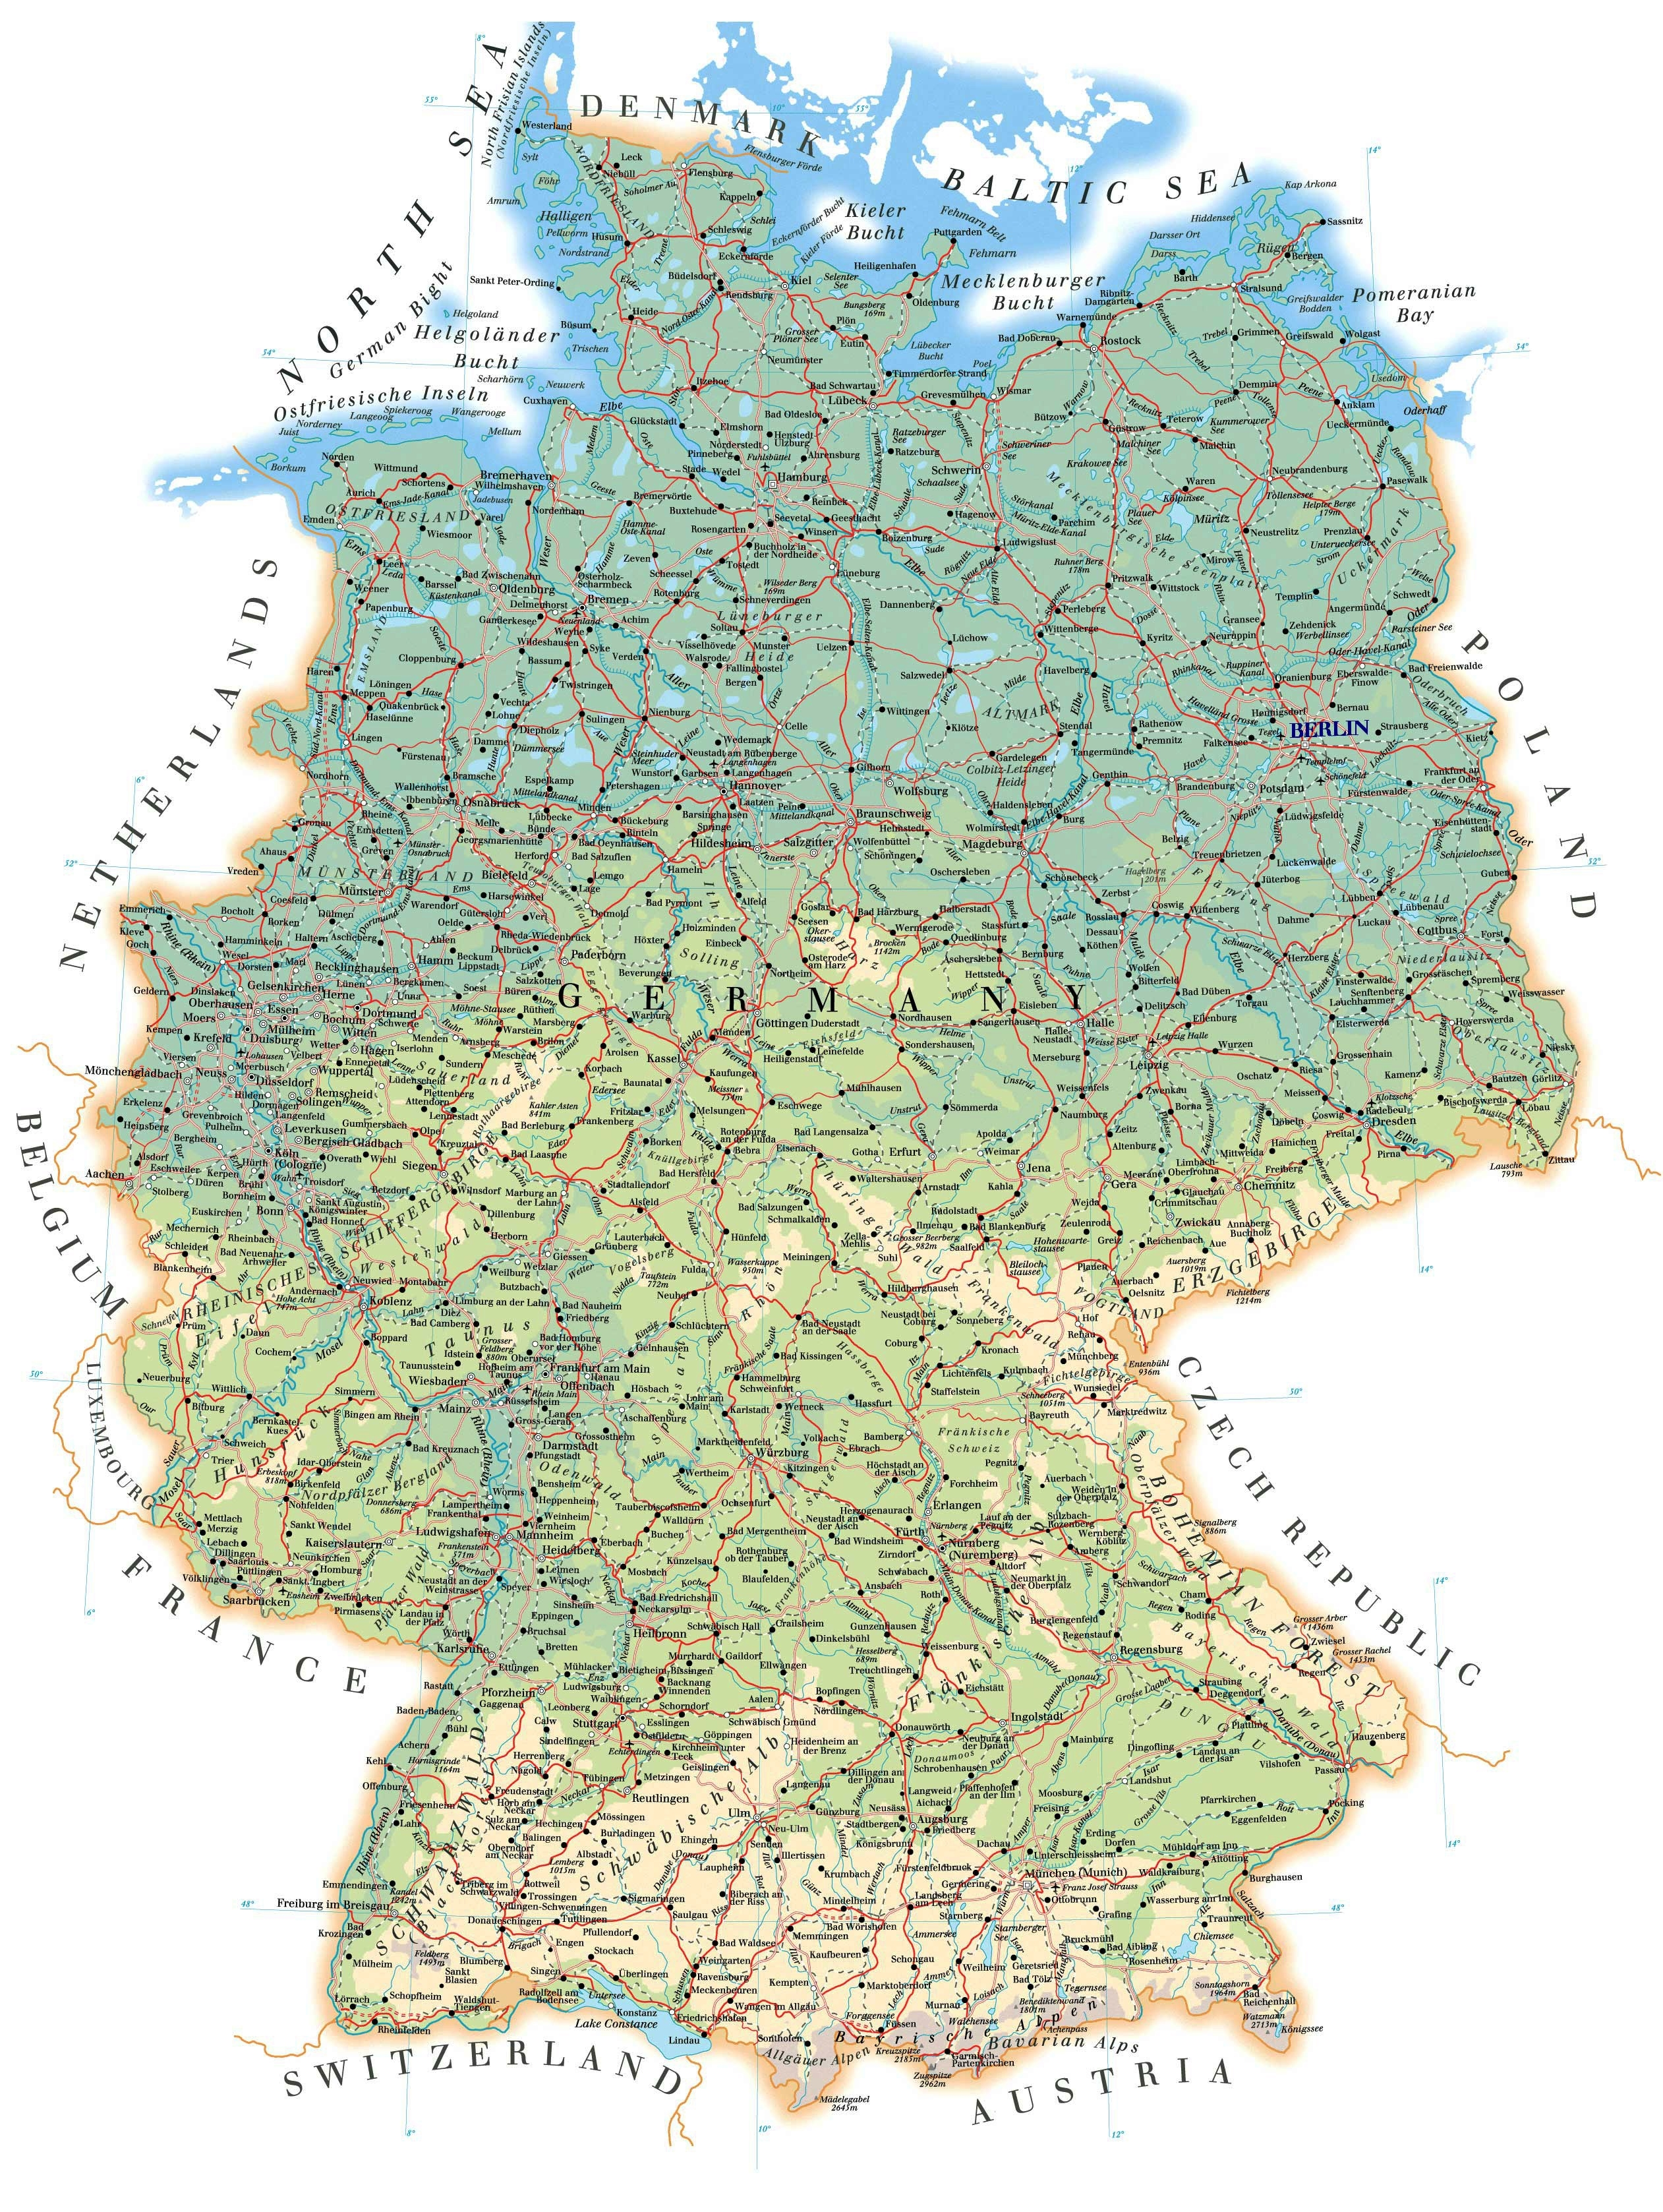 Road Map Of Germany With Cities And Towns And Travel Information pertaining to Free Map Of Germany With Cities And Towns